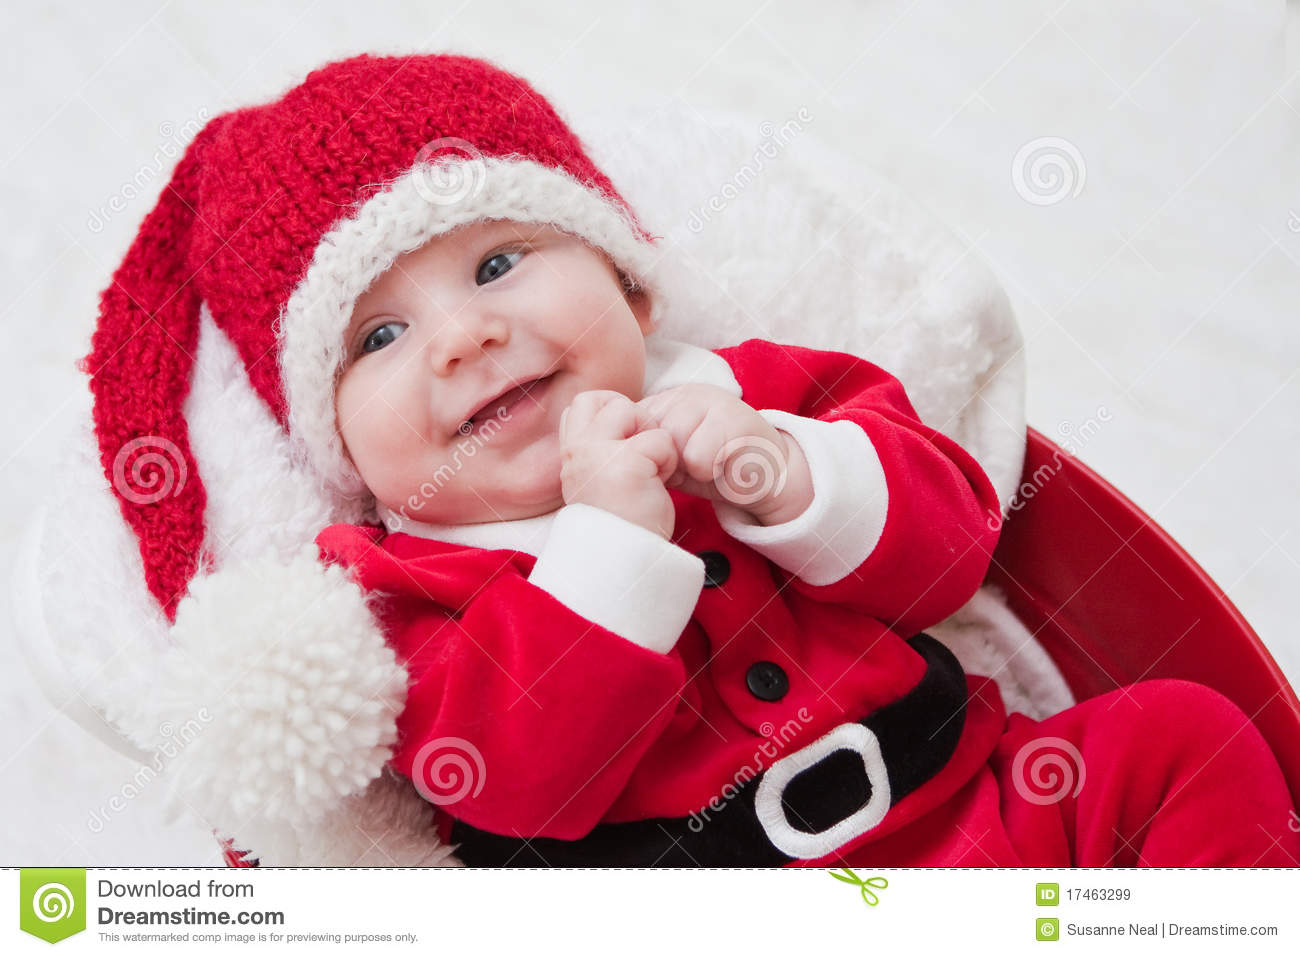 798df9cf7ab Smiling Baby In Santa Cap And Outfit Stock Image - Image of cute ...